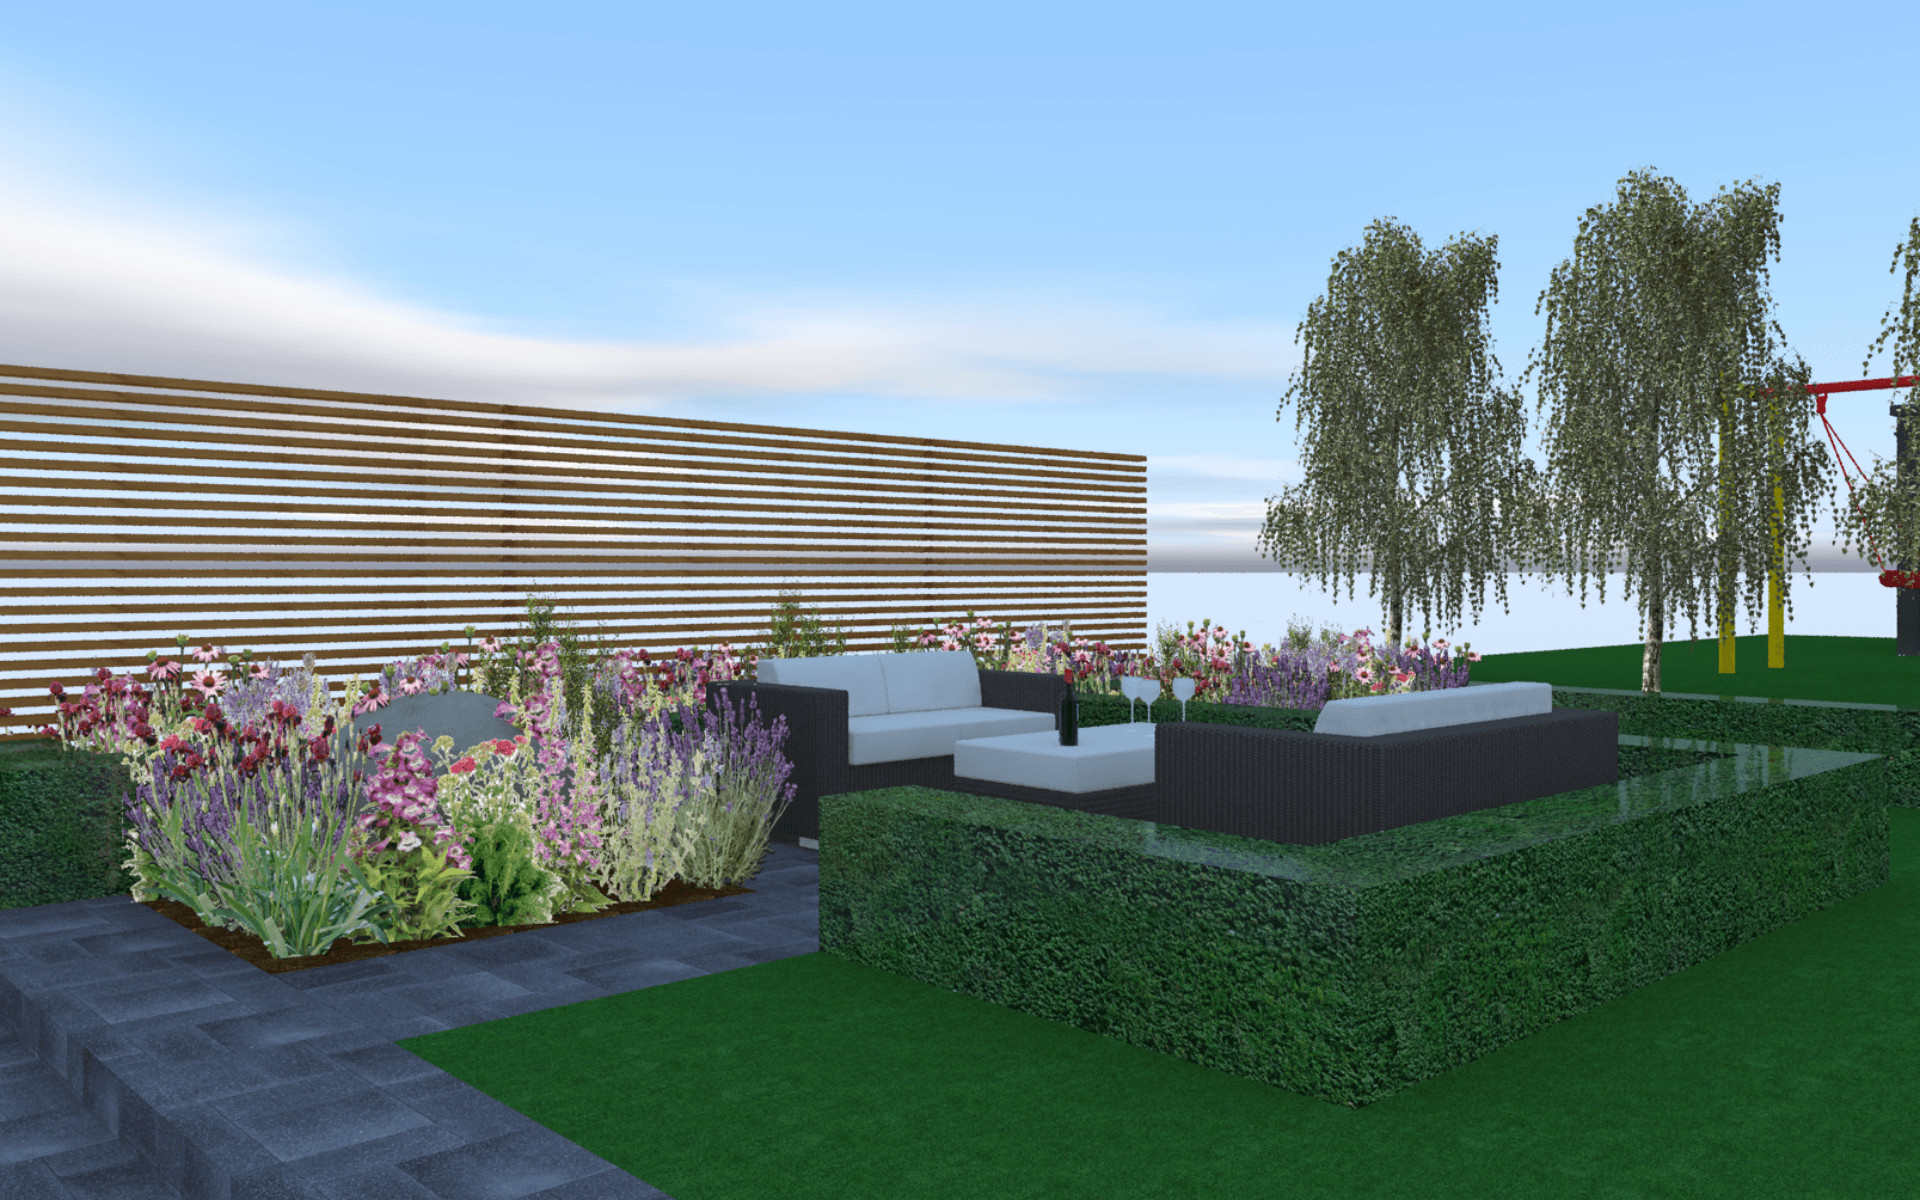 Garden Design Visual Seating Area Buxus Hedging Slatted Fencing